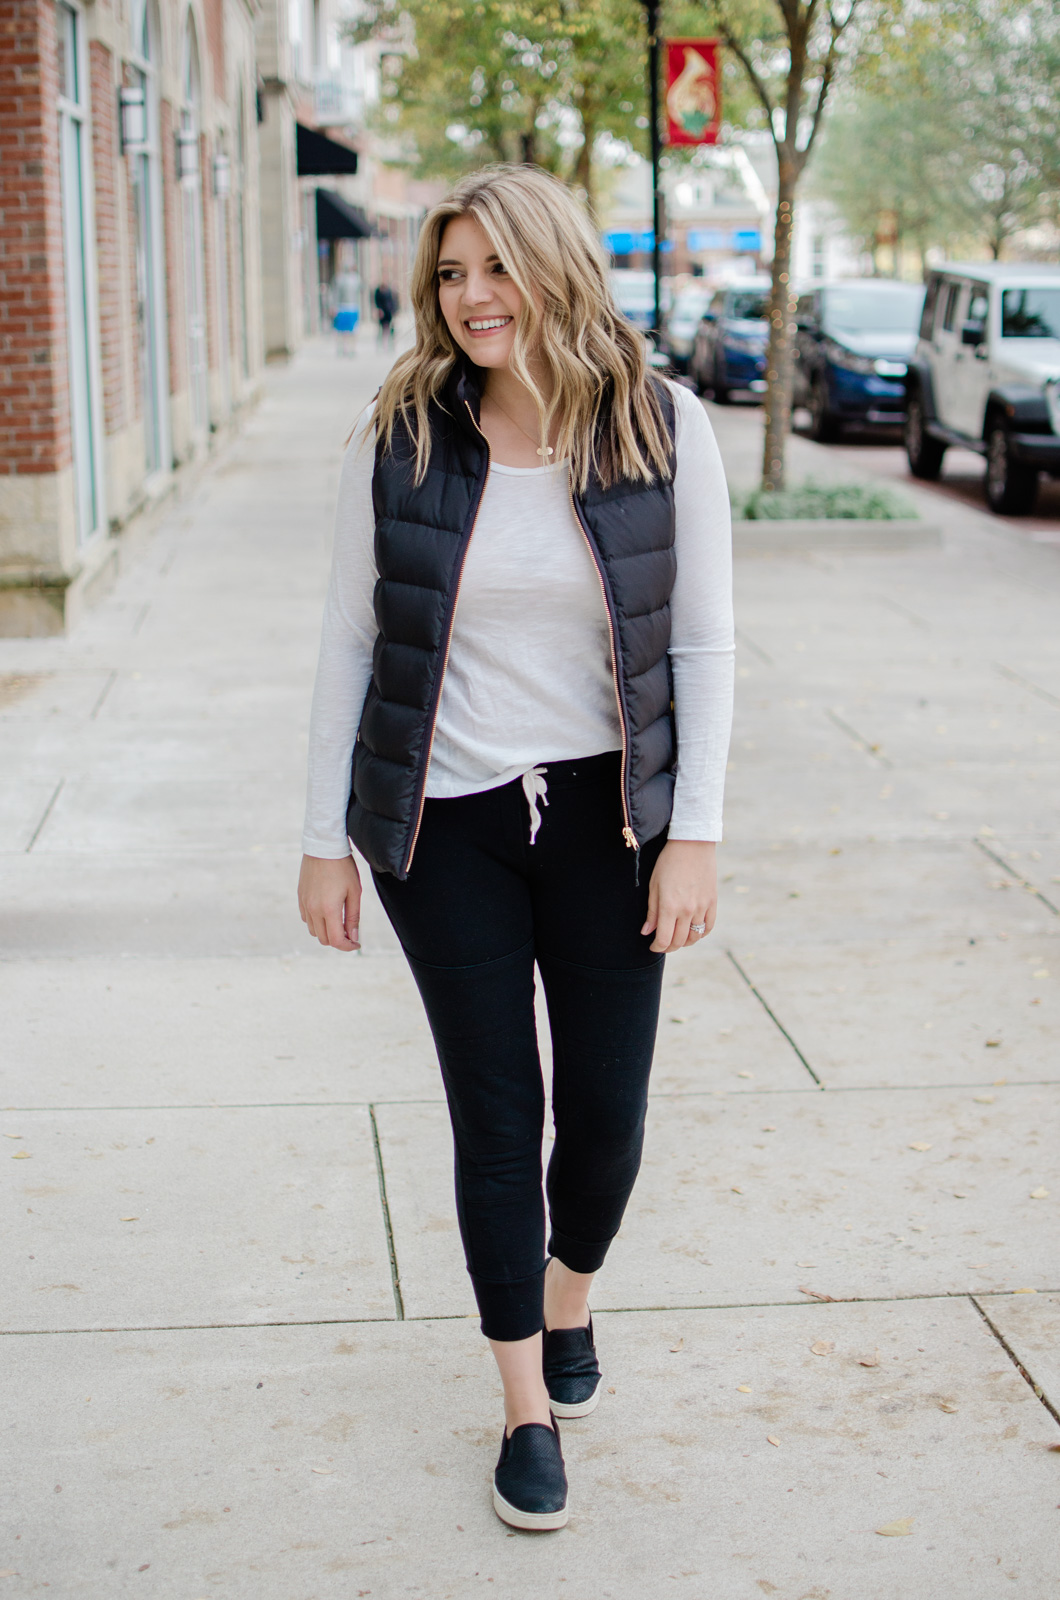 six puffer vest outfits - head to the blog to see all the ideas and get details of this jogger pants look! bylaurenm.com